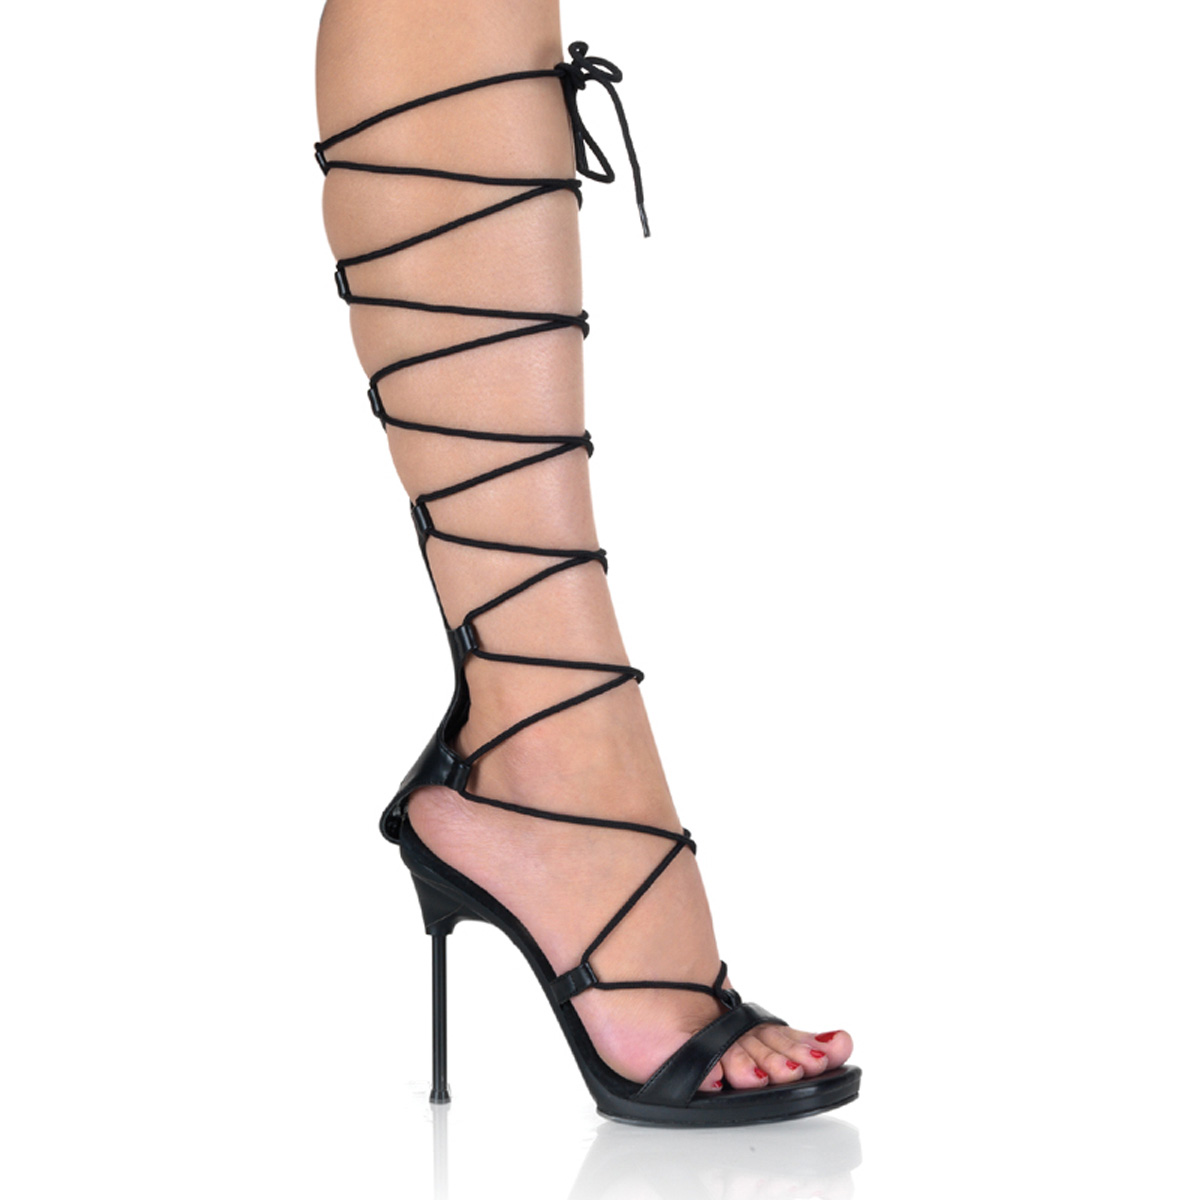 PLEASERs 4 1/2 inch Stiletto Heel Lace-Up Mini-Platform Sandal Black Faux Leather/Black at Sears.com